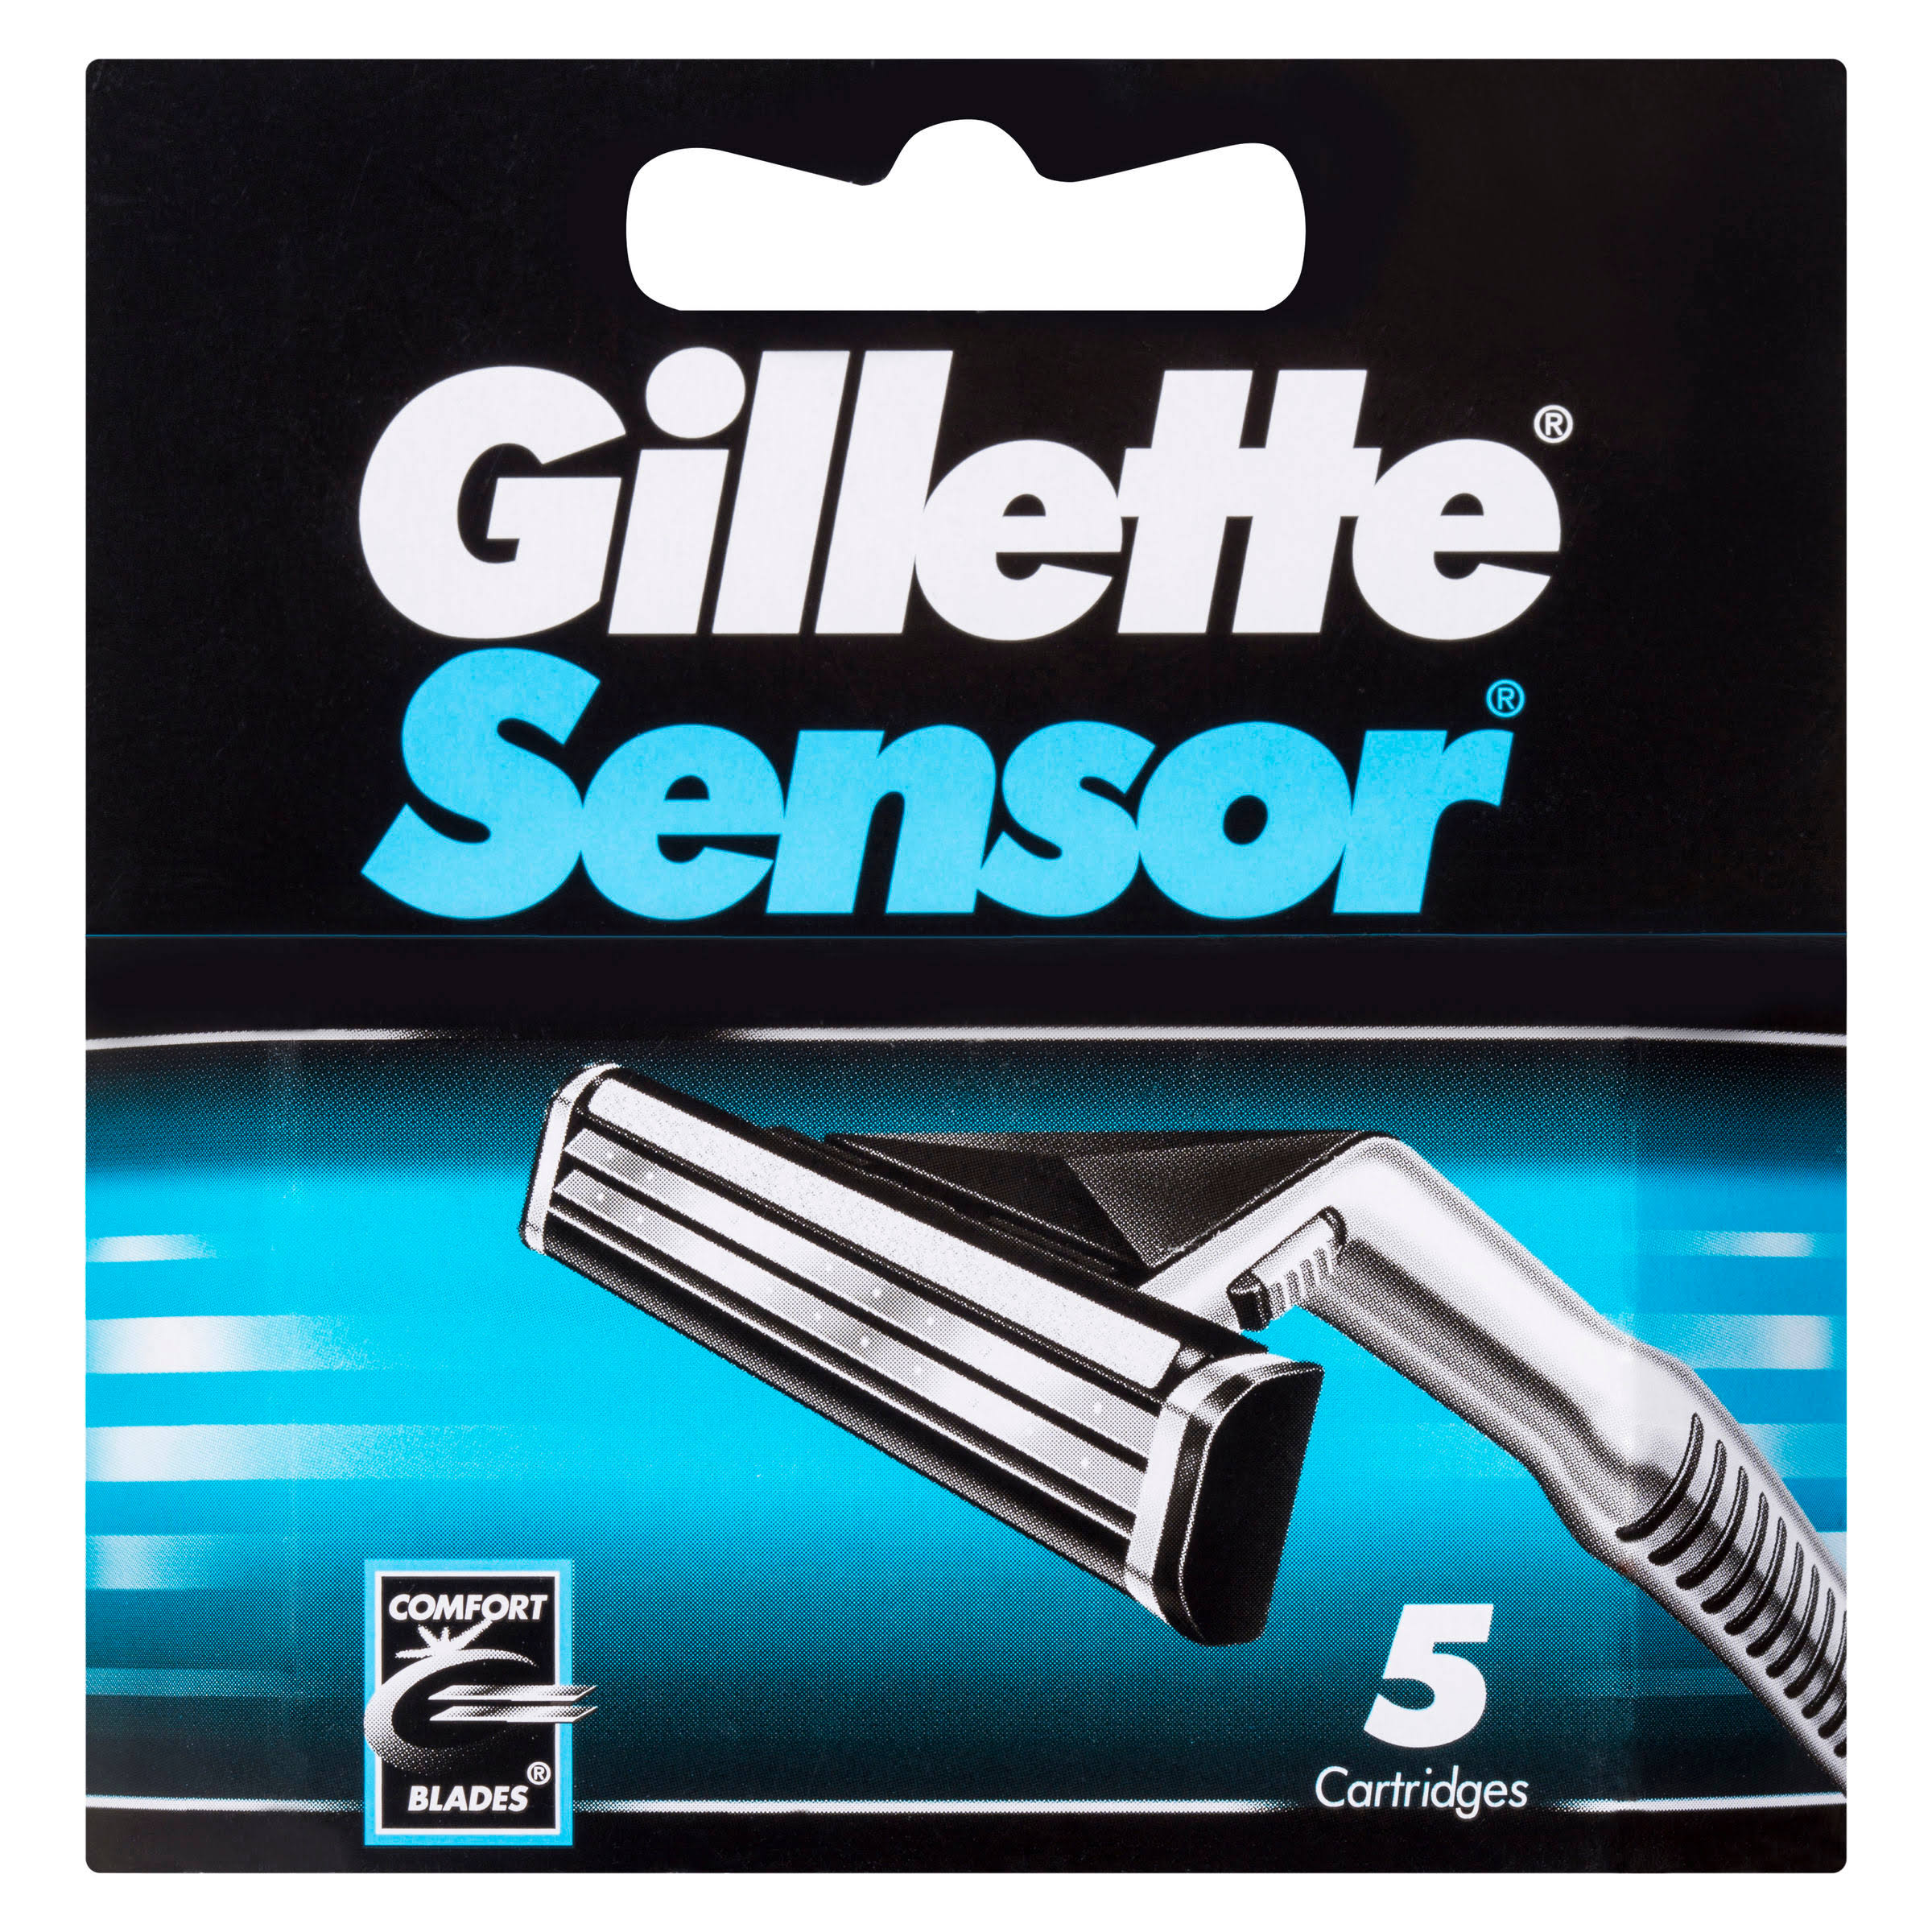 Gillette Sensor Shaver Replacement Cartridges - 5 Self-Adjusting Twin Blade Cartridges